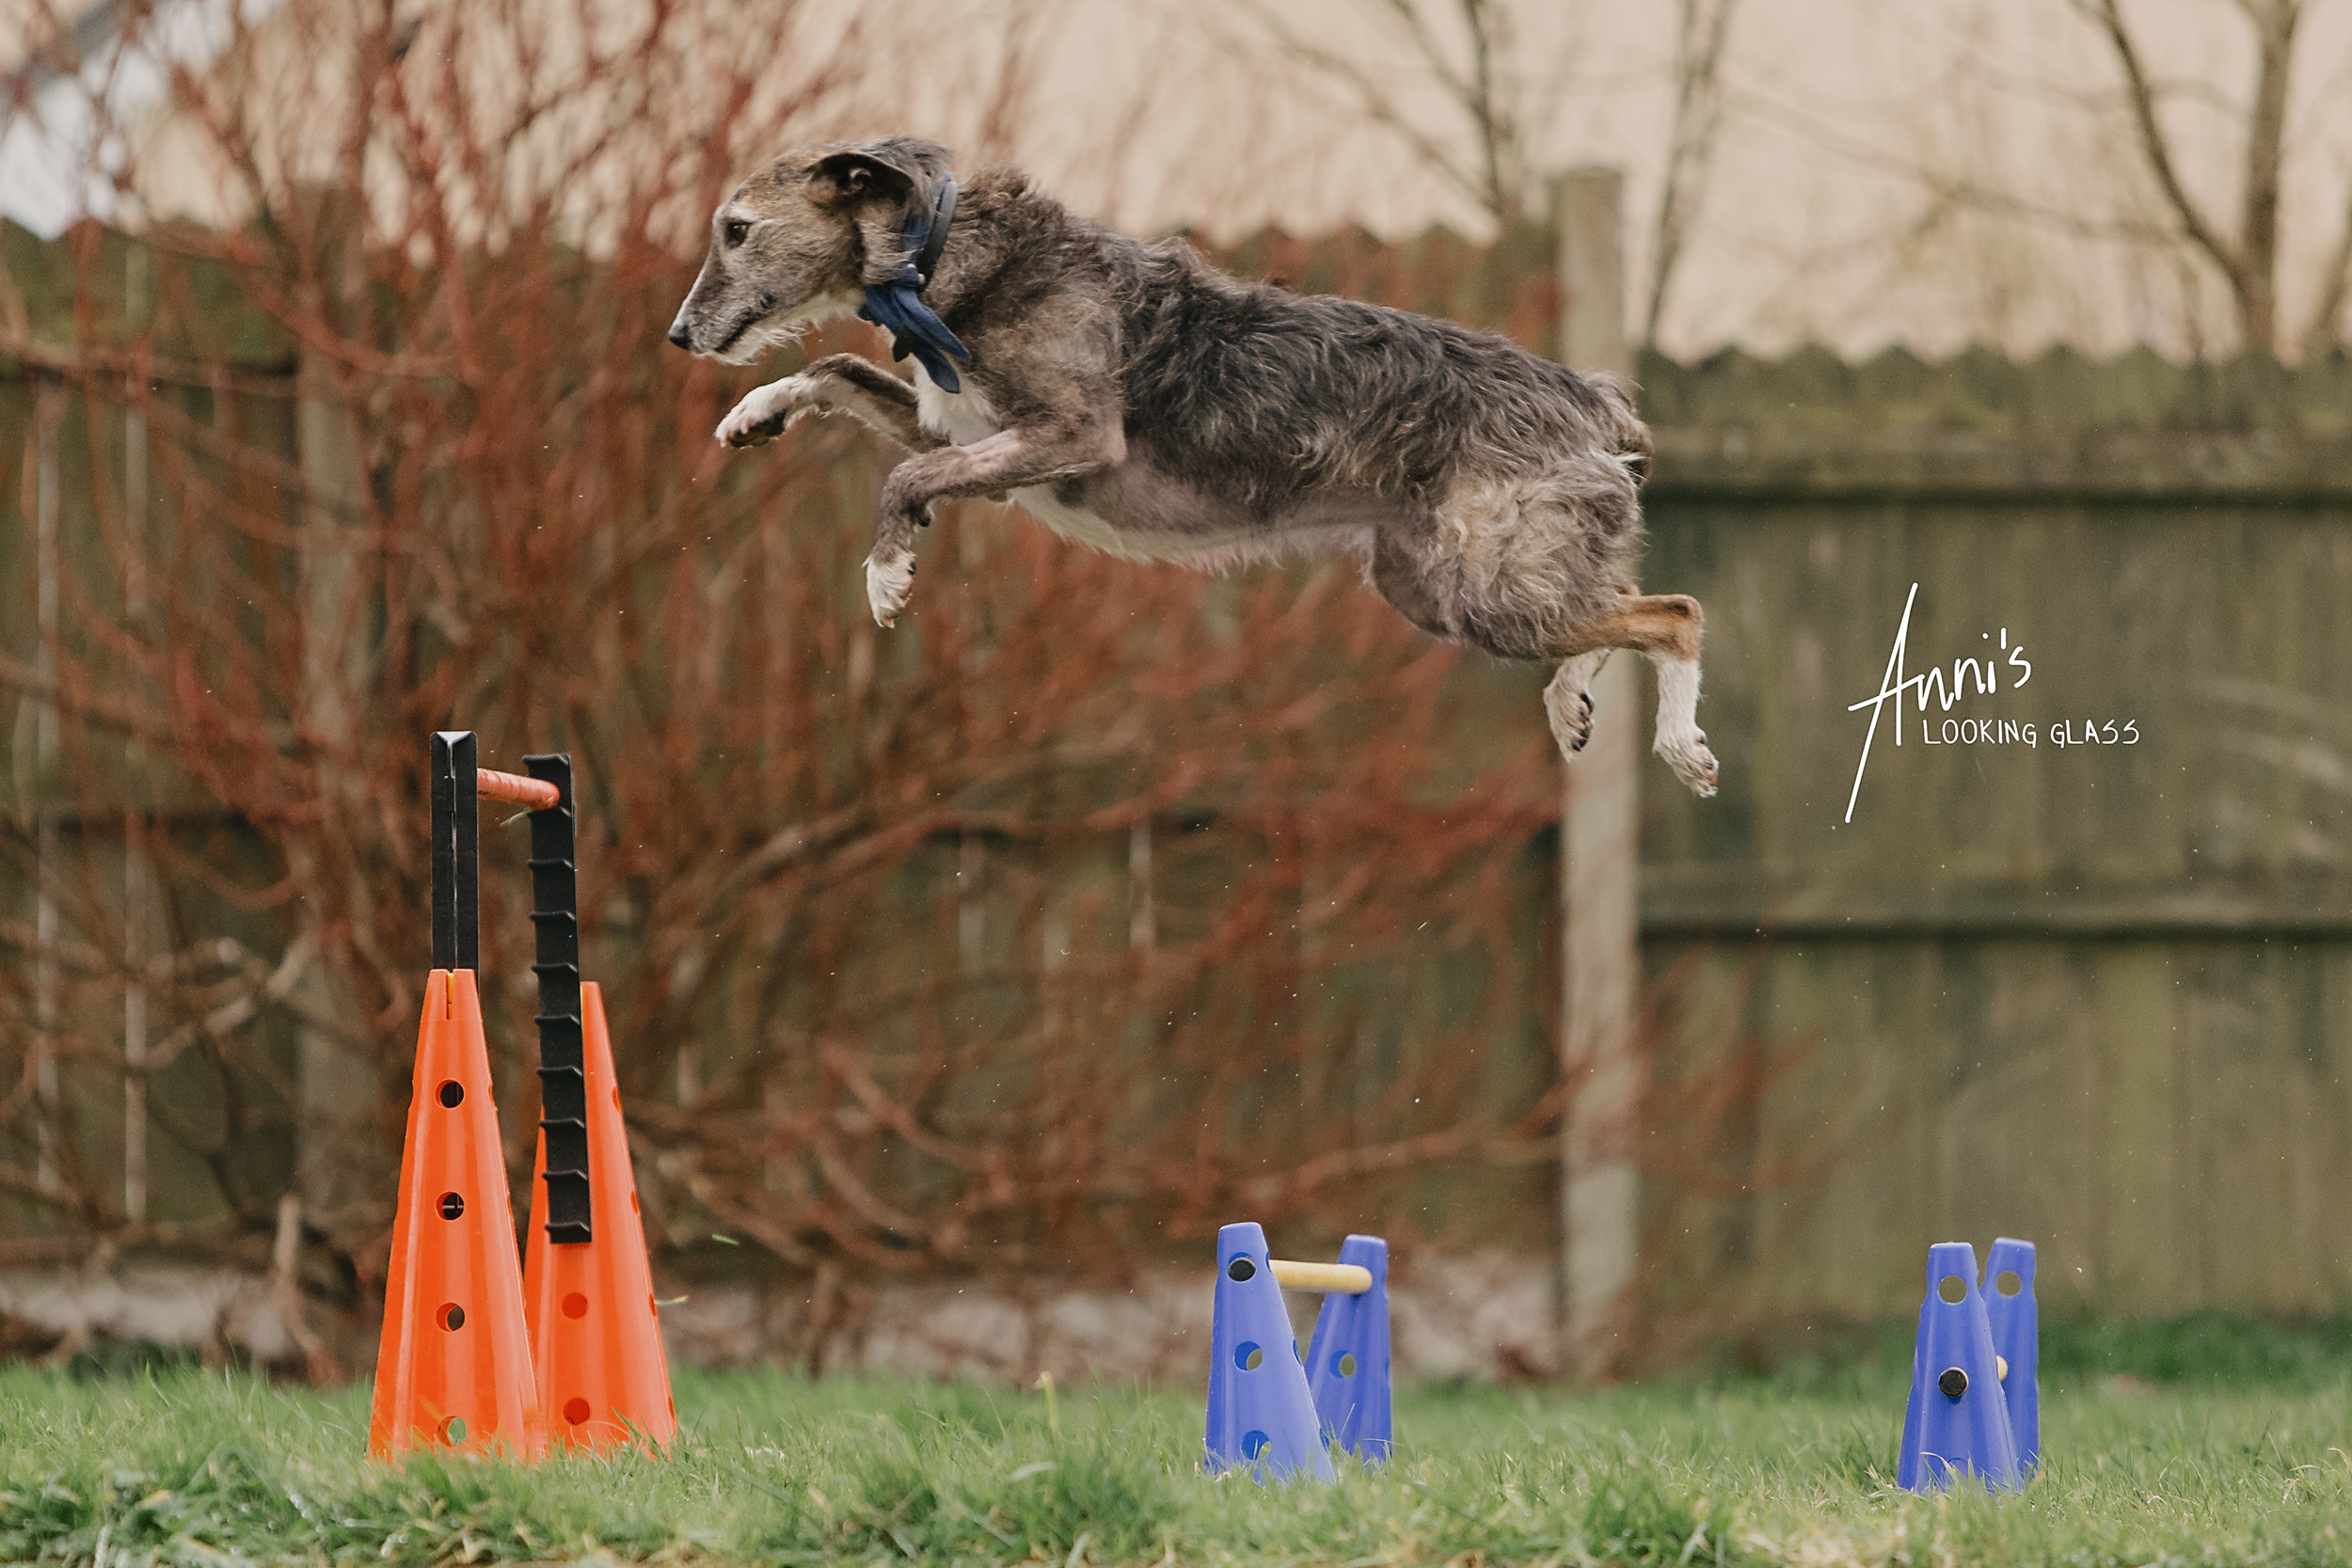 A greyound takes a big leap across canine agility obstacles